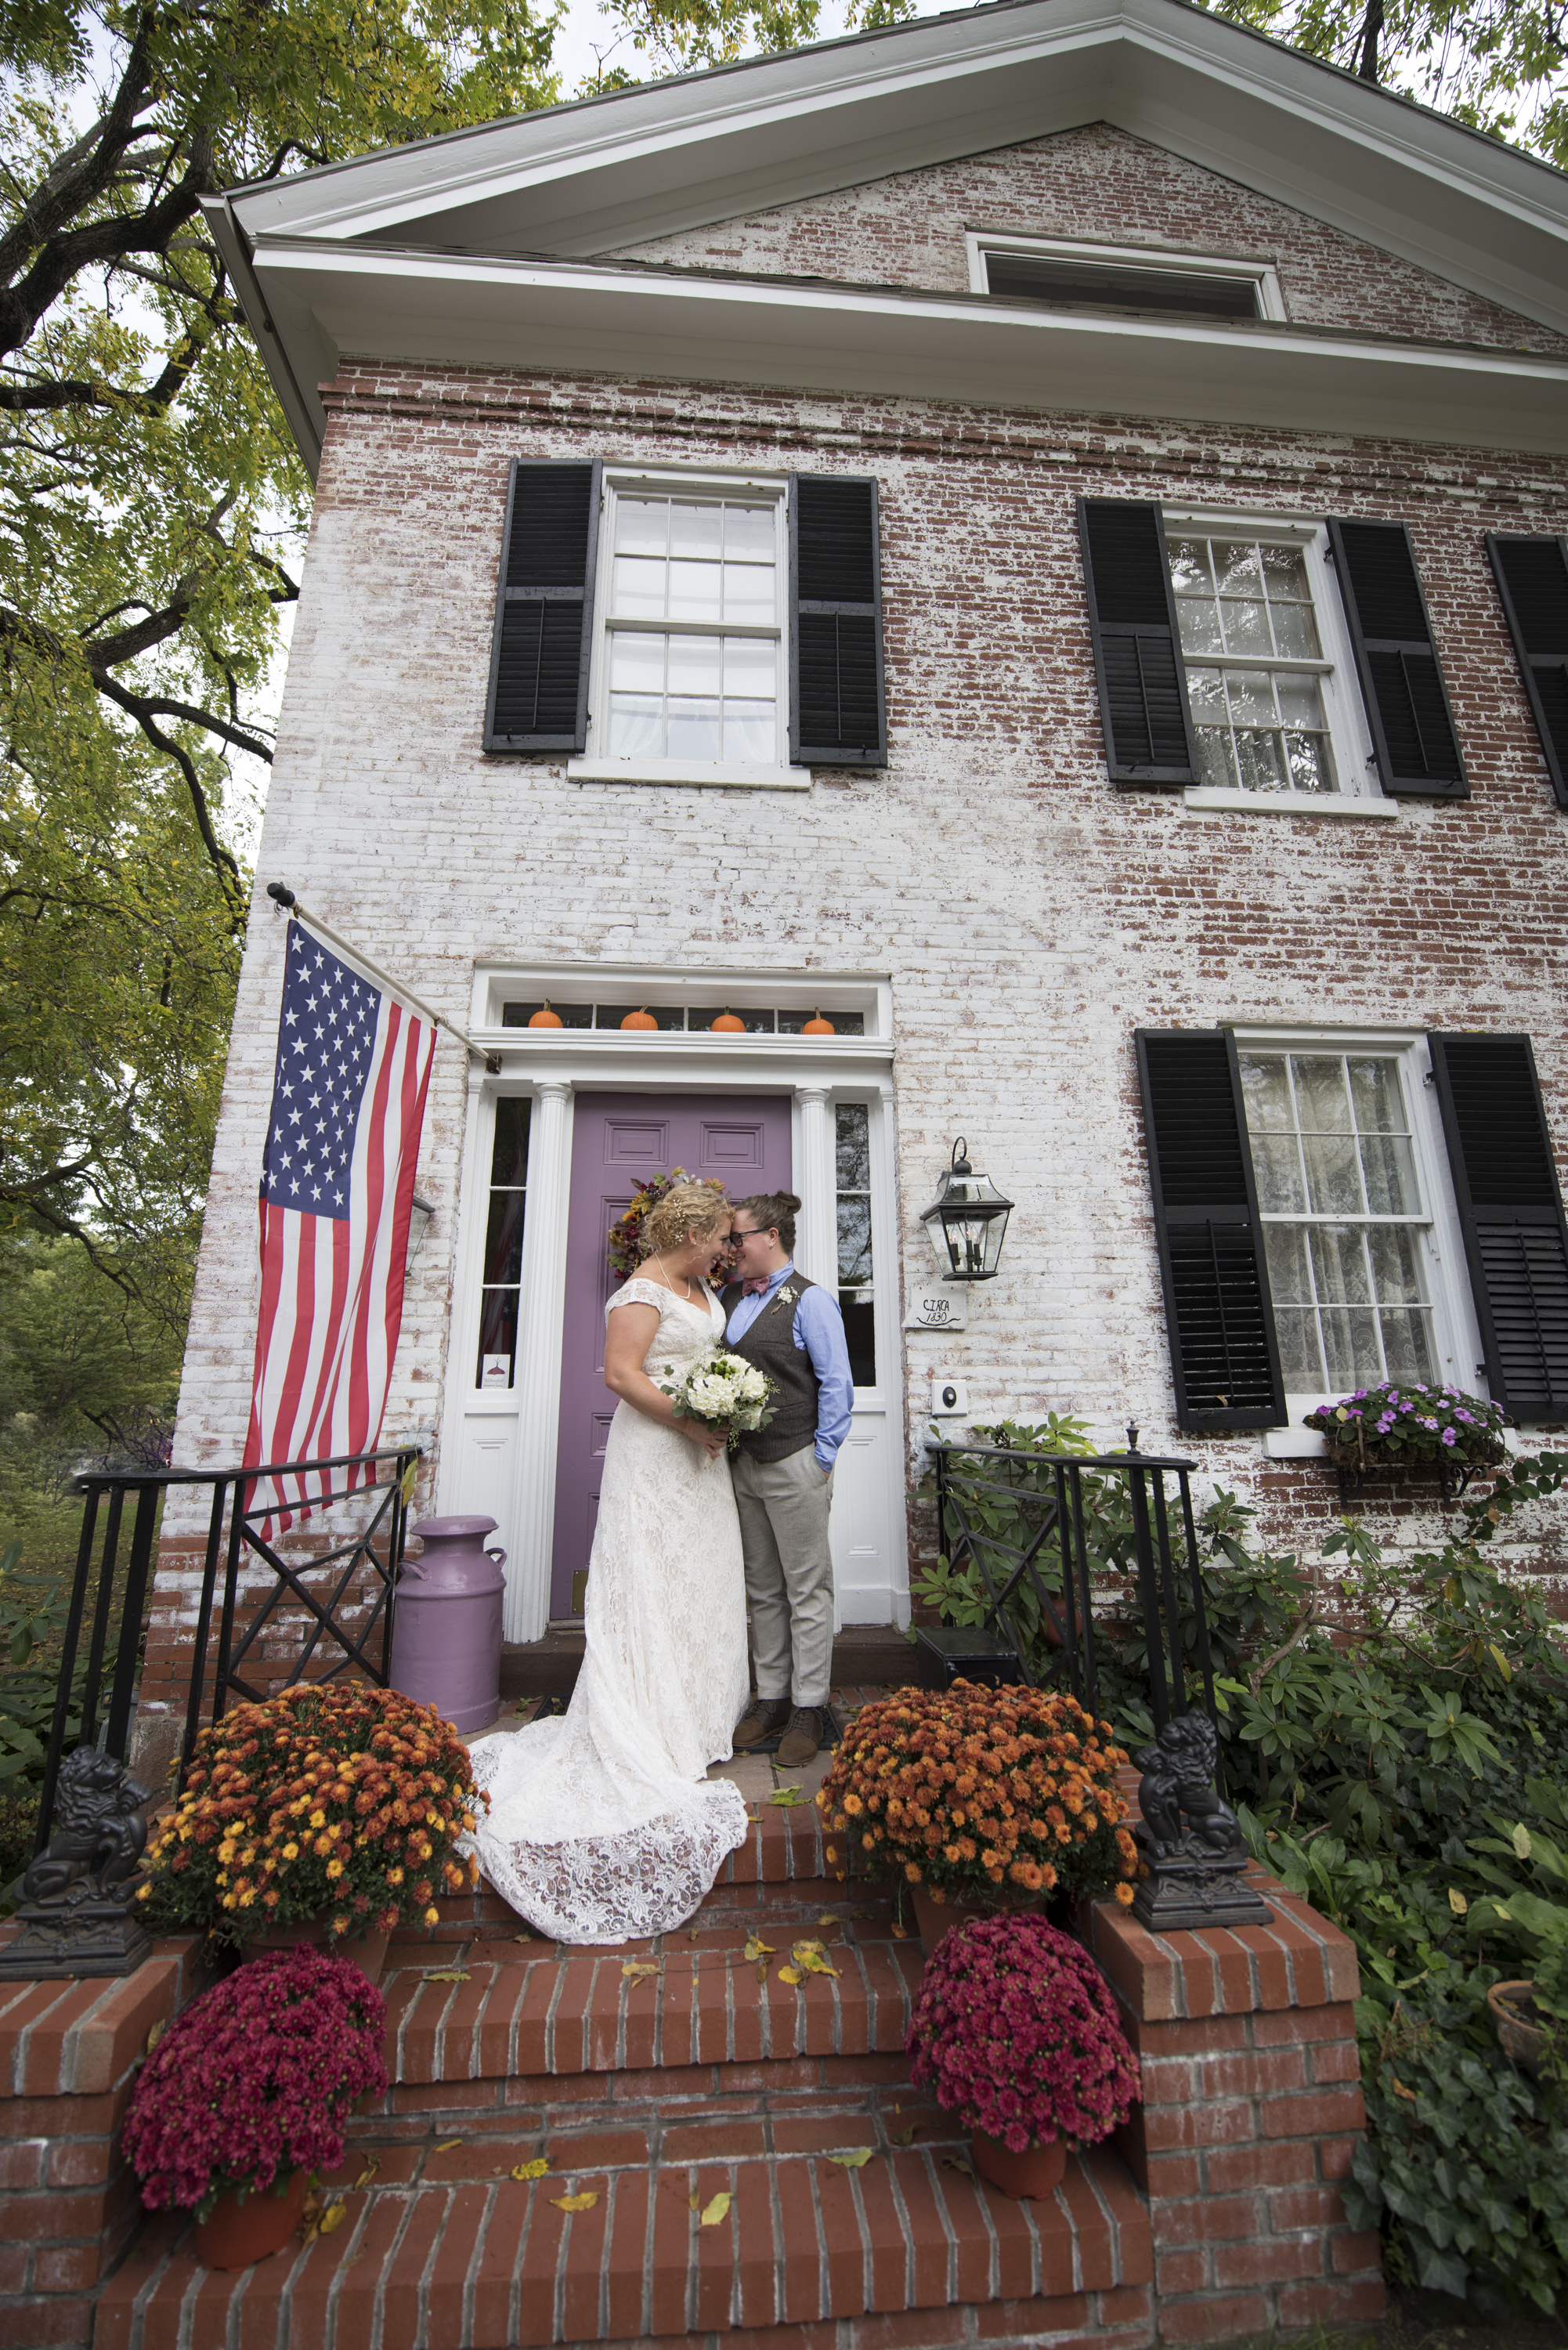 Wedding couple in front of Bed and Breakfast